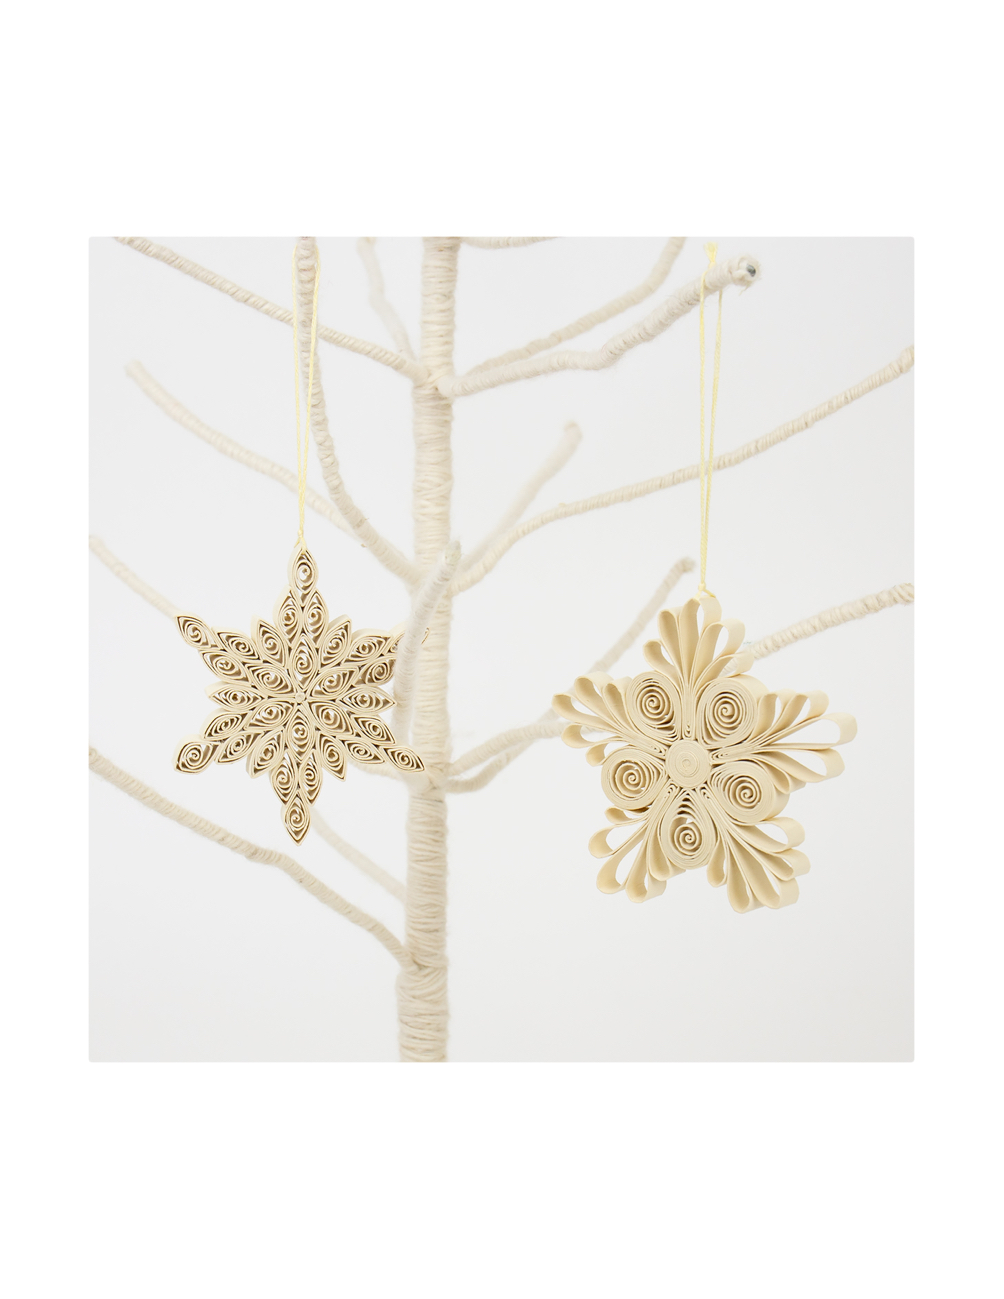 Quilled Christmas Ornament 2-pack